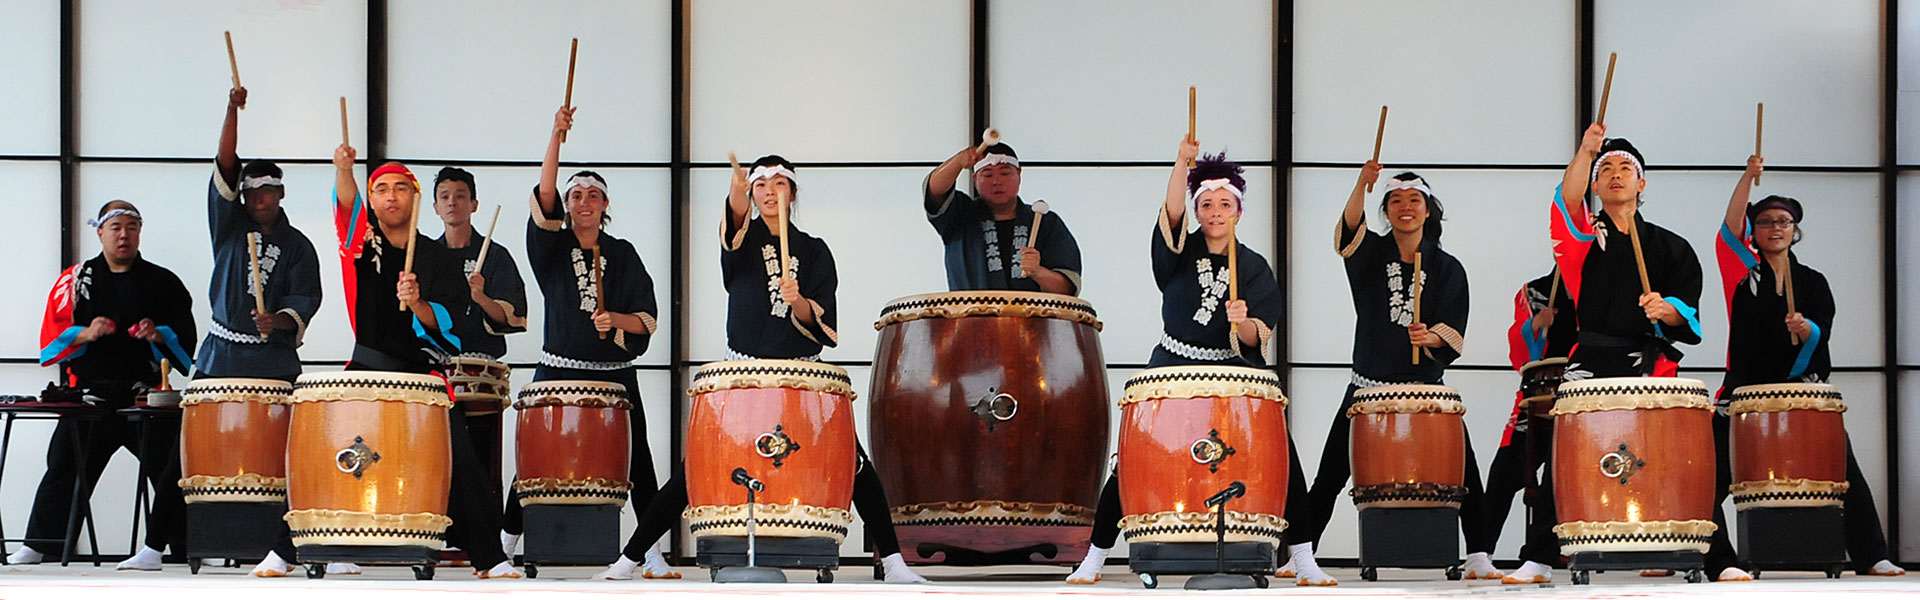 Taiko-1920x600-No-Crowd